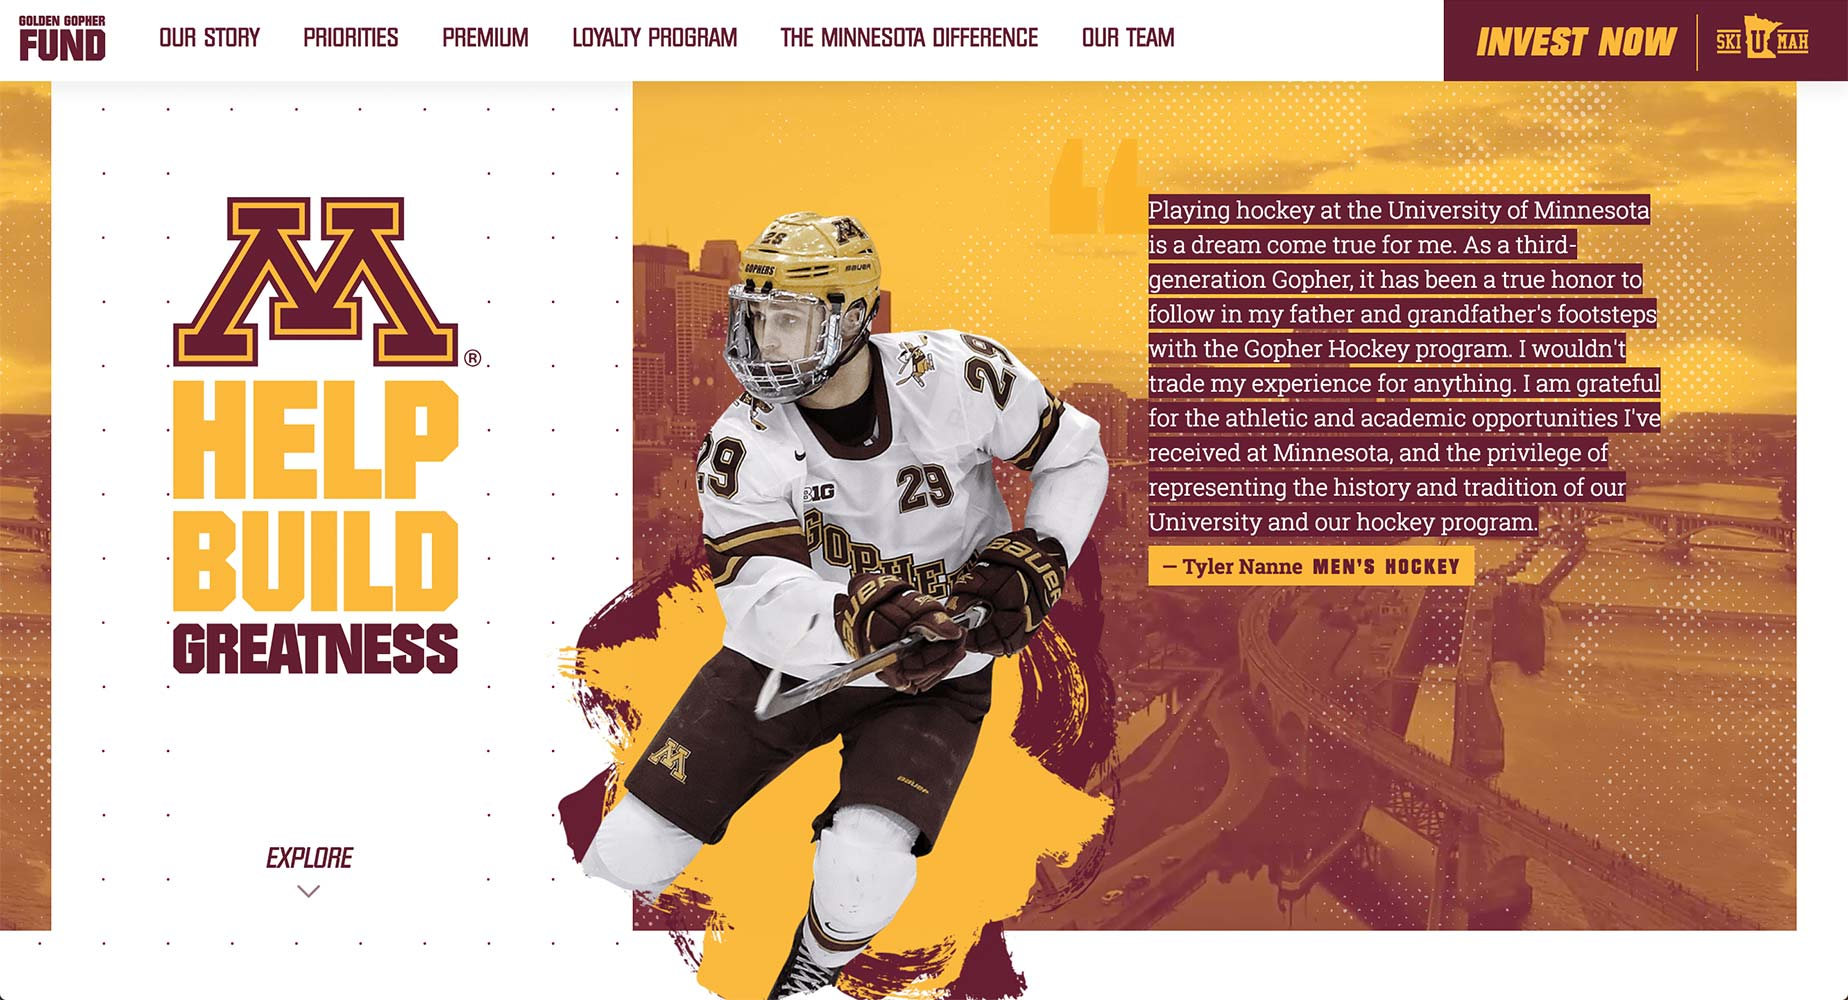 Golden Gopher Fund Website | <a href='https://www.goldengopherfund.com/' target='_blank'>Visit Site <i class='nc-icon-glyph arrows-1_share-91'></i></a><br><span>University of Minnesota</span>